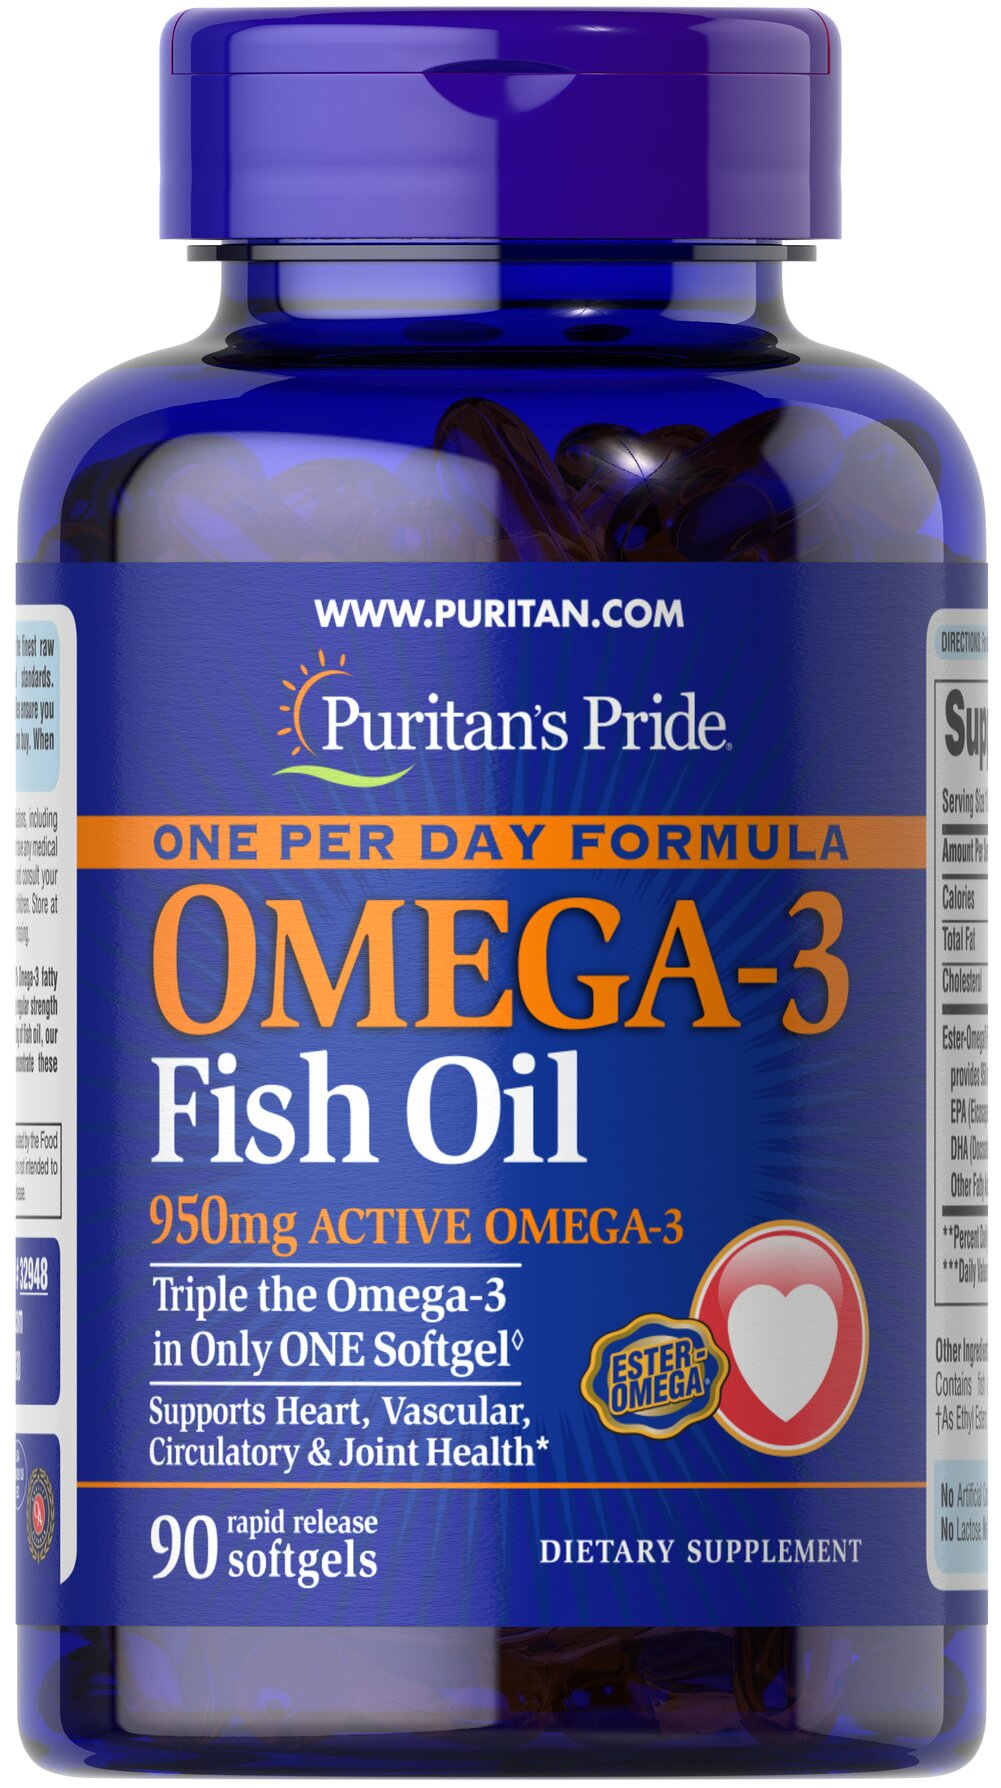 One Per Day Omega-3 Fish Oil 1360 mg (950 mg Active Omega-3) <p><strong>Puritan's Pride One Per Day Formula</strong></p>Omega-3 Fish Oil contains a super high concentration of 70% providing 950 mg from 1360 mg of fish oil. ** <p></p><p>While regular strength fish oils typically contain 300 mg of Omega-3s from 1000 mg of fish oil, our formula undergoes additional purification steps to concentrate these essential fats while removing unwanted compounds.